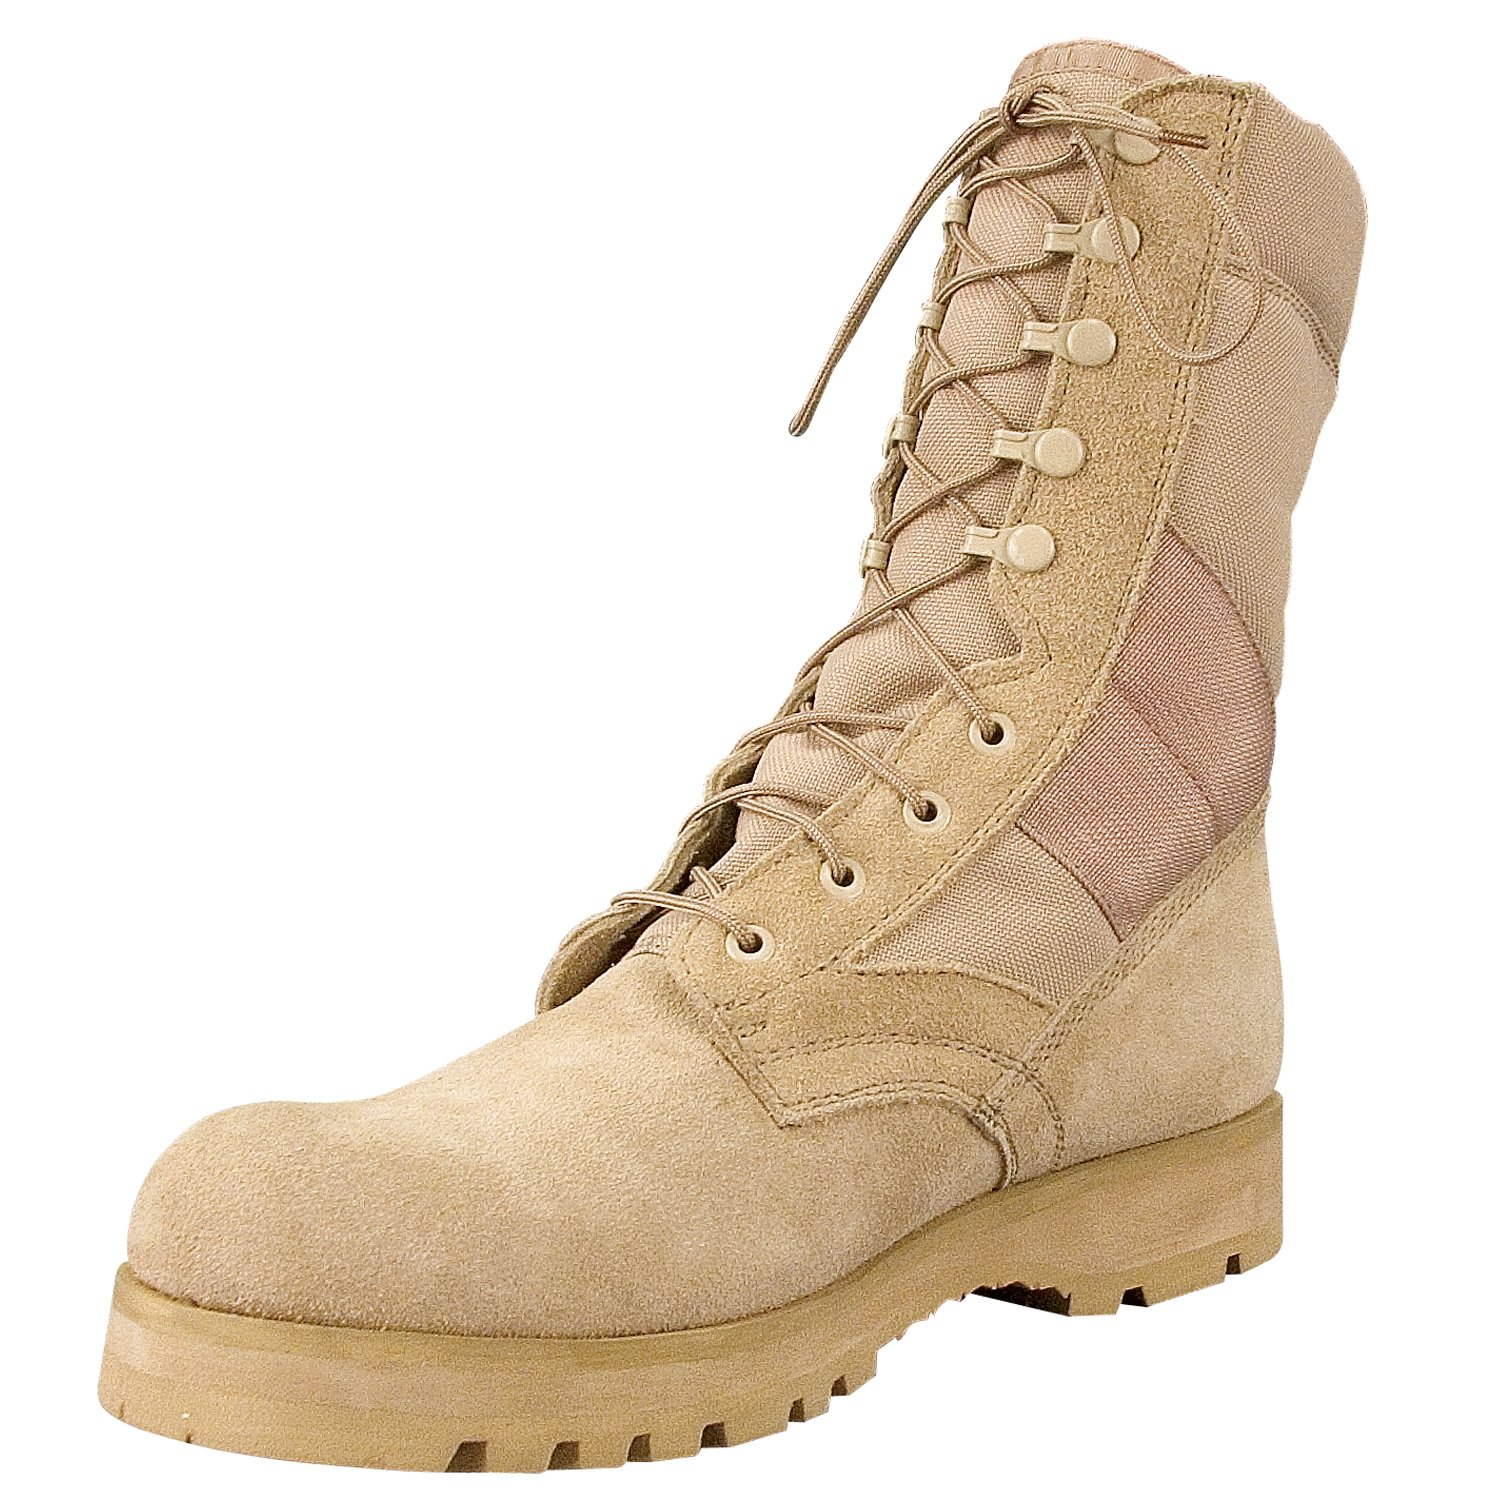 Rothco G.I. Type Sierra Sole Tactical Boots, 3, Regular, Desert Tan by Rothco